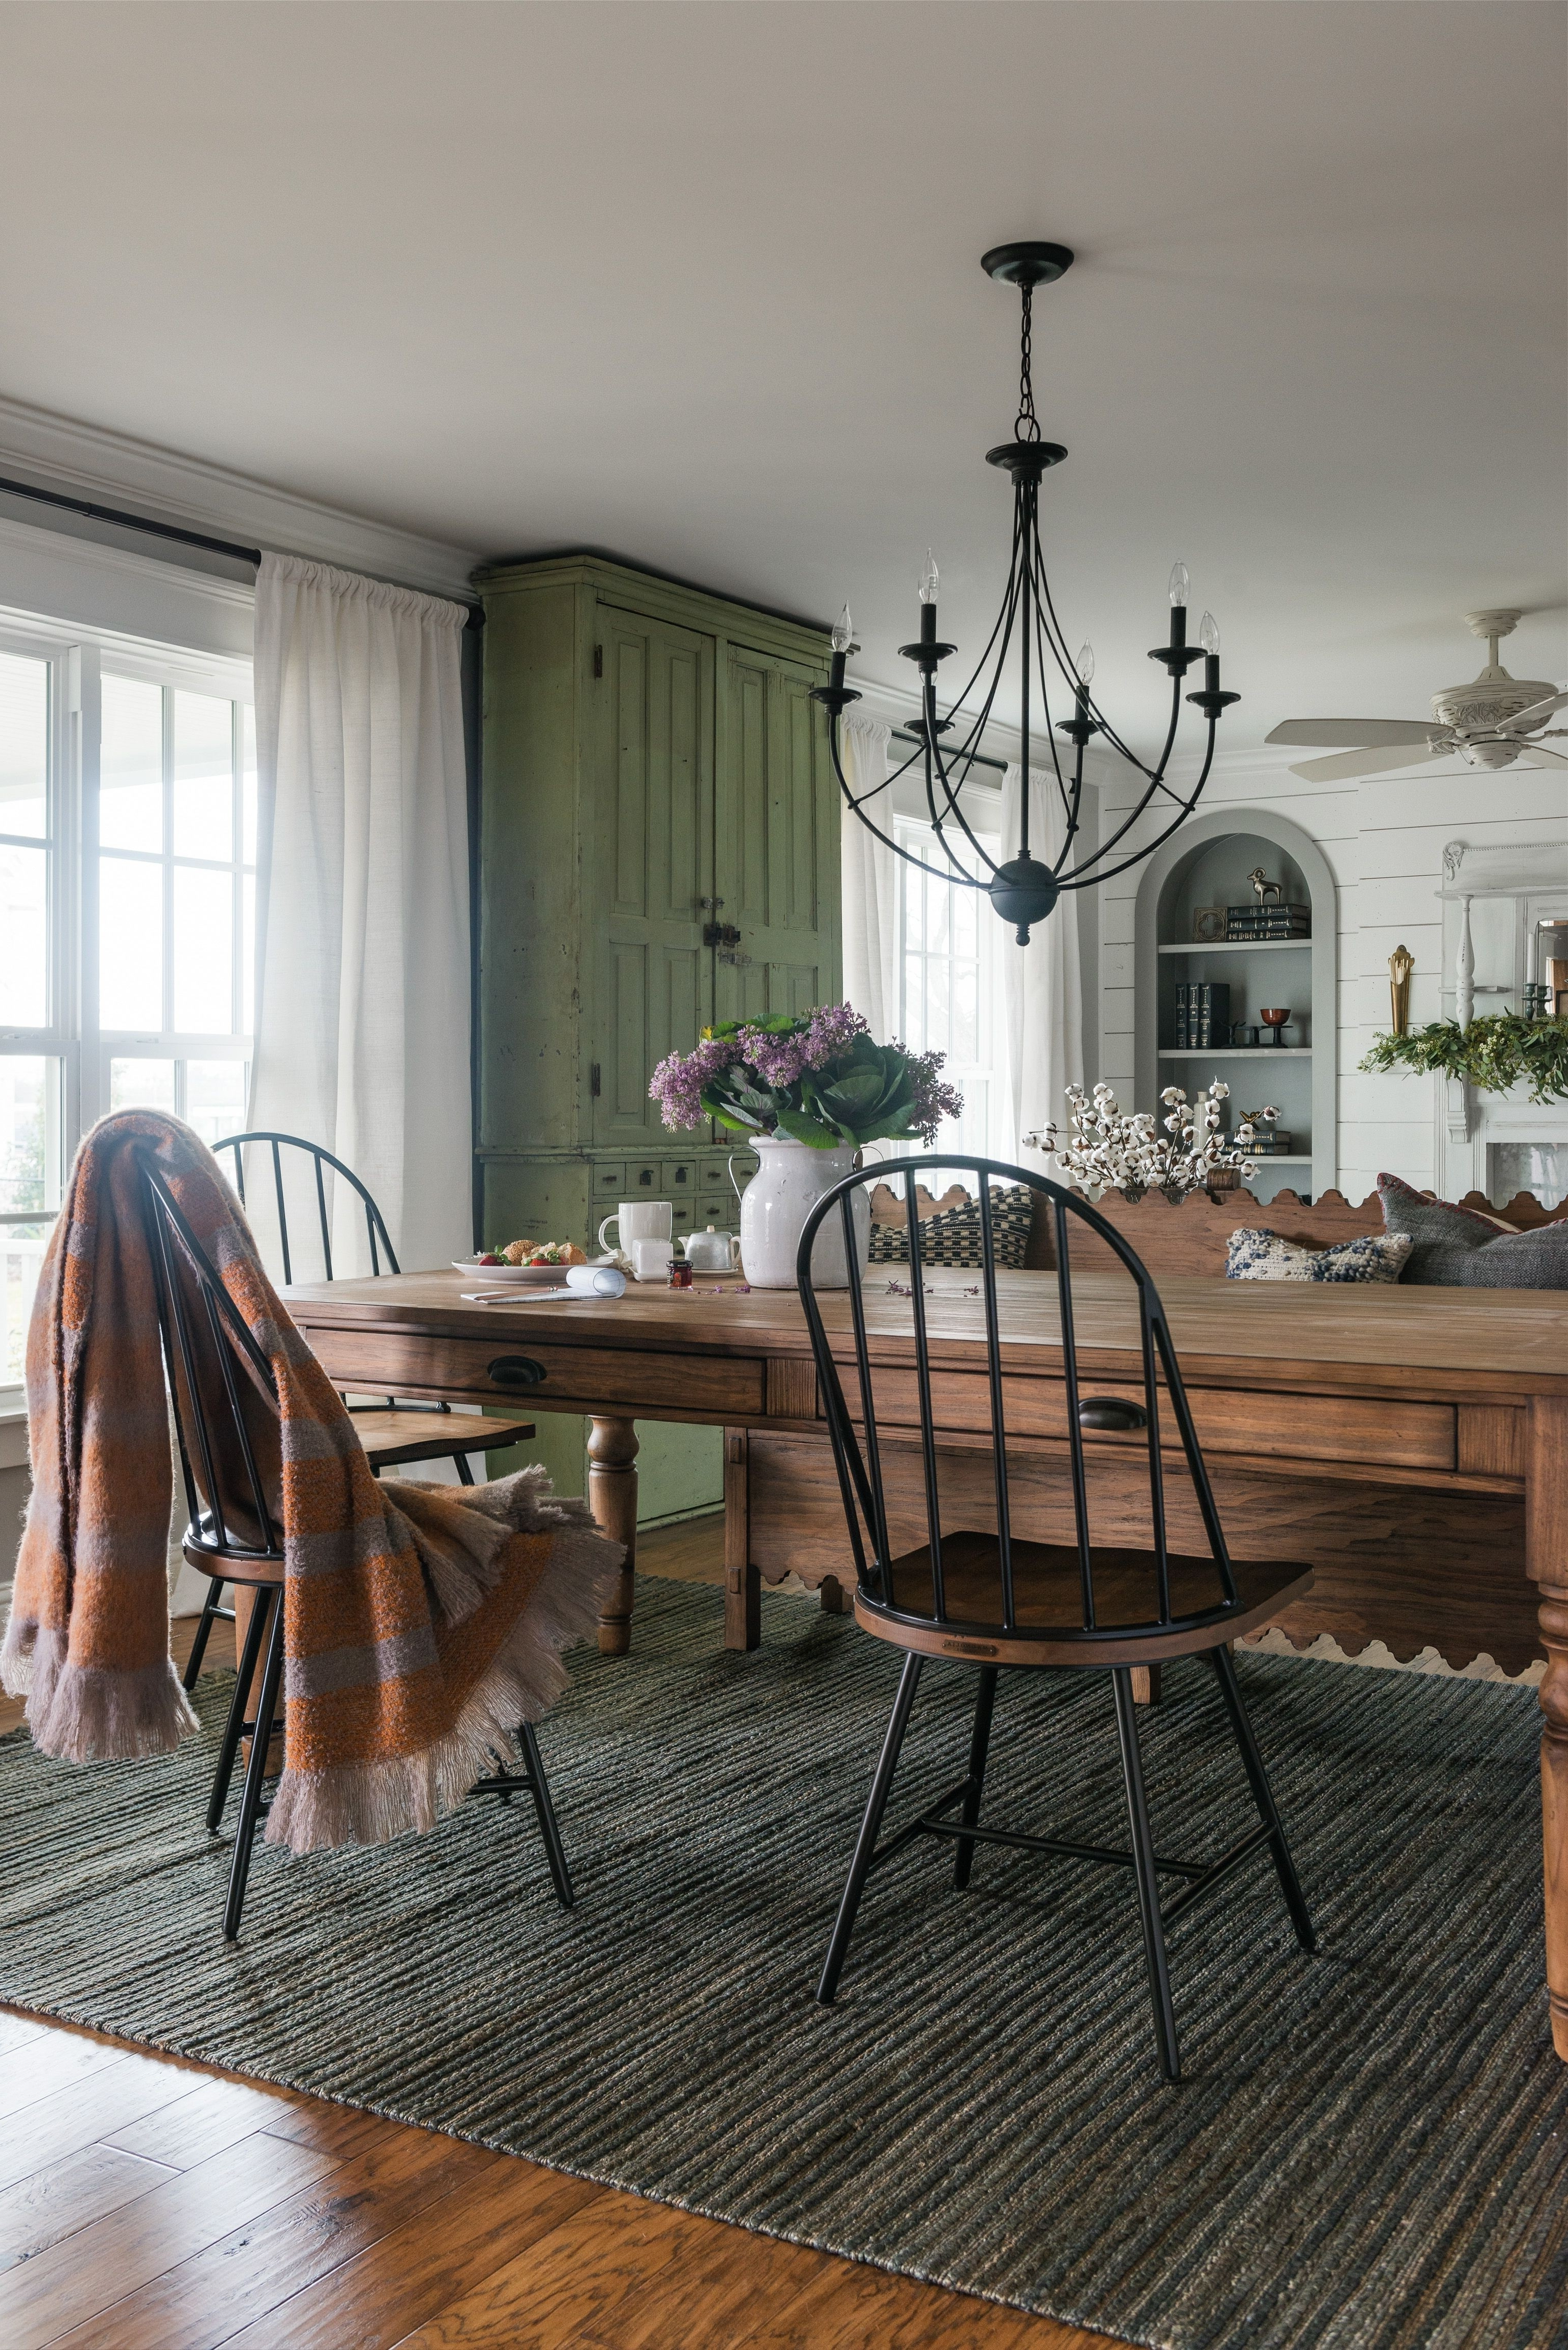 Well Known Magnolia Home Shop Floor Dining Tables With Iron Trestle With Magnolia Home Trestle Dining Table New Magnolia Home Iron Trestle (View 23 of 25)